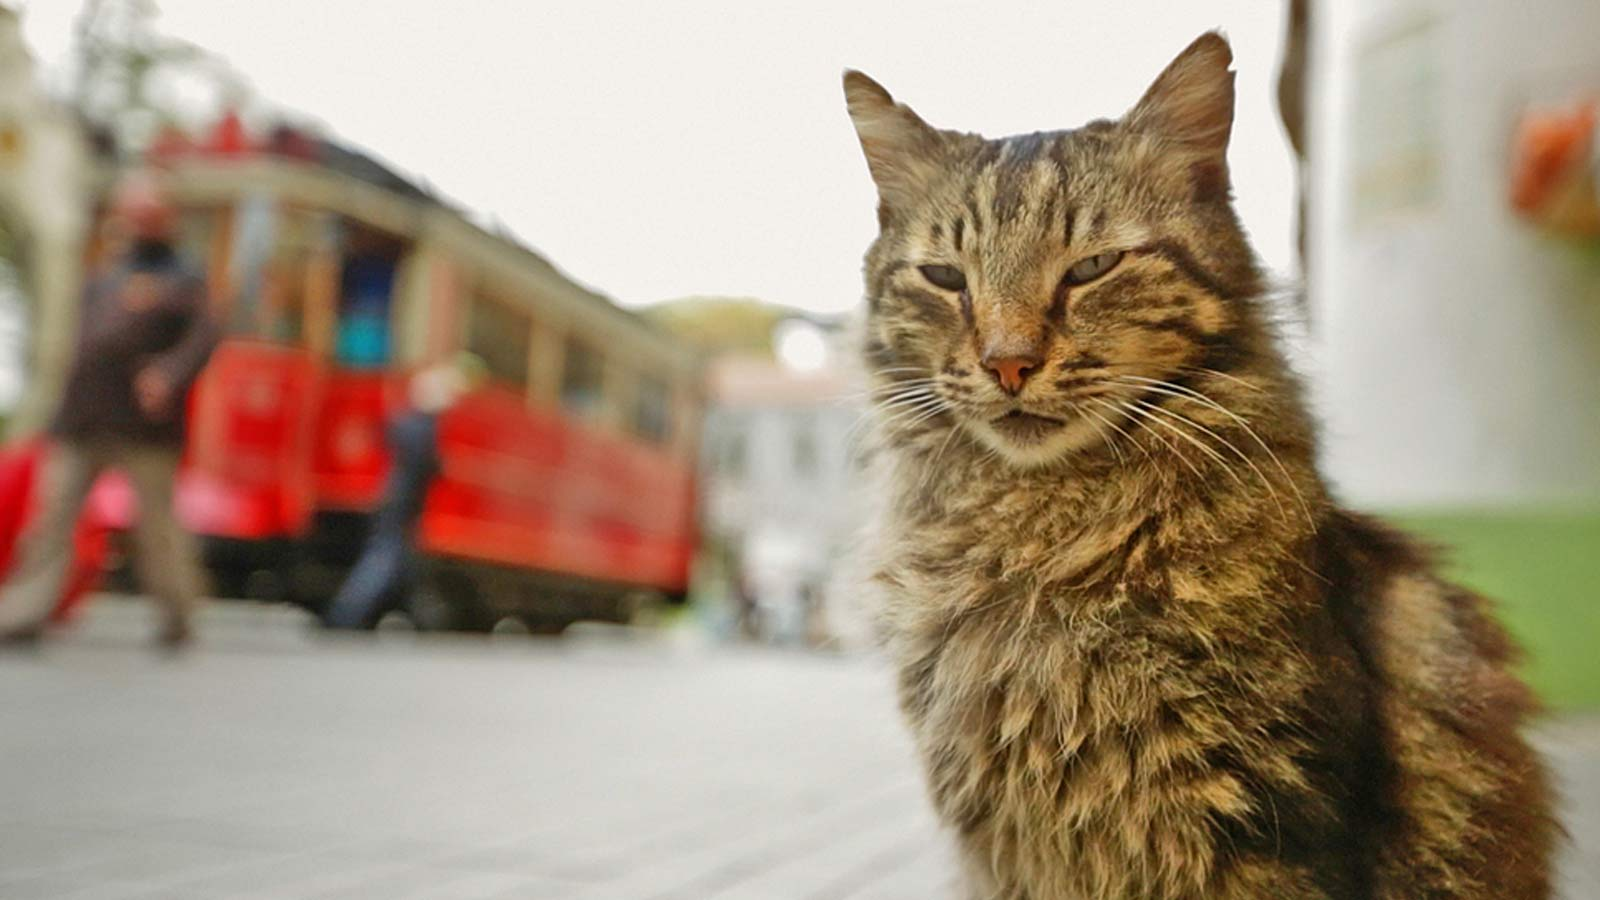 Kedi Gatos de Estambul